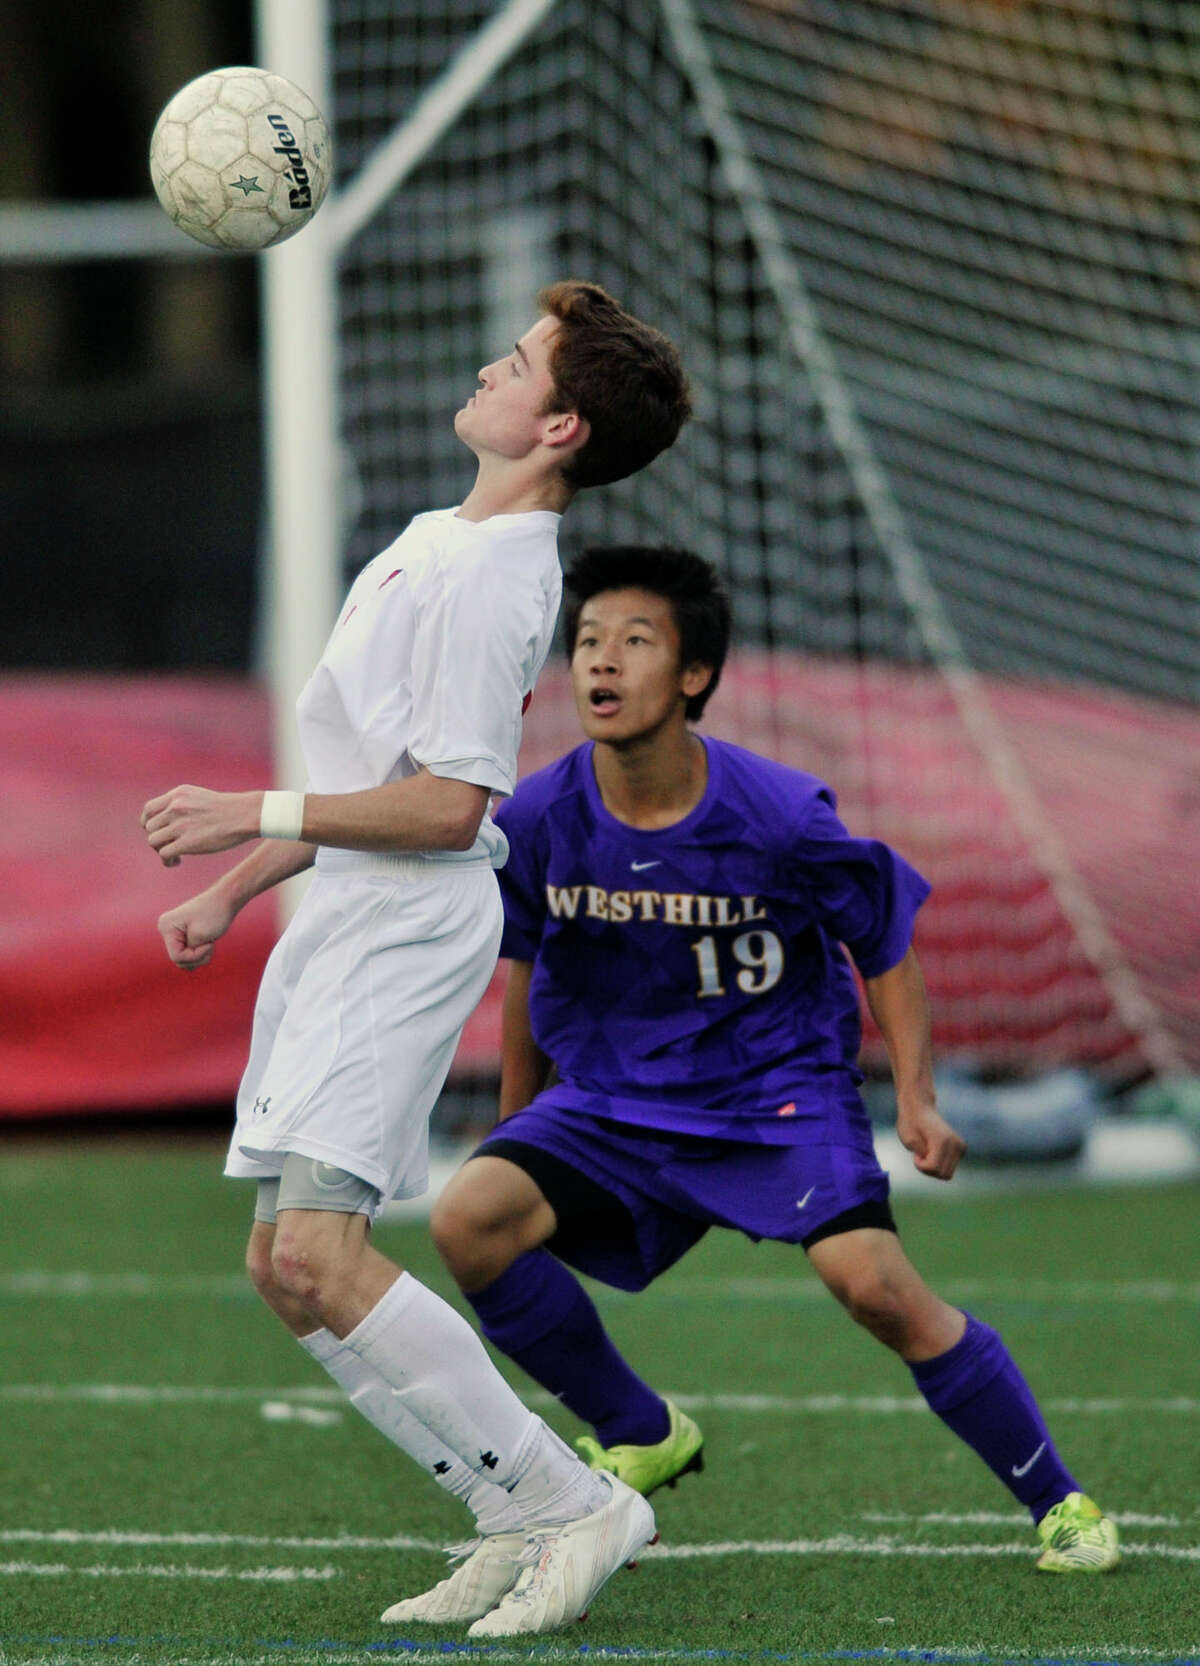 Greenwich's Patrick Santini brings the ball under control while being guarded by Westhill's Charles Teeters during their game at Greenwich High School in Greenwich, Conn., on Tuesday, Oct. 15, 2013. Greenwich won, 2-0.